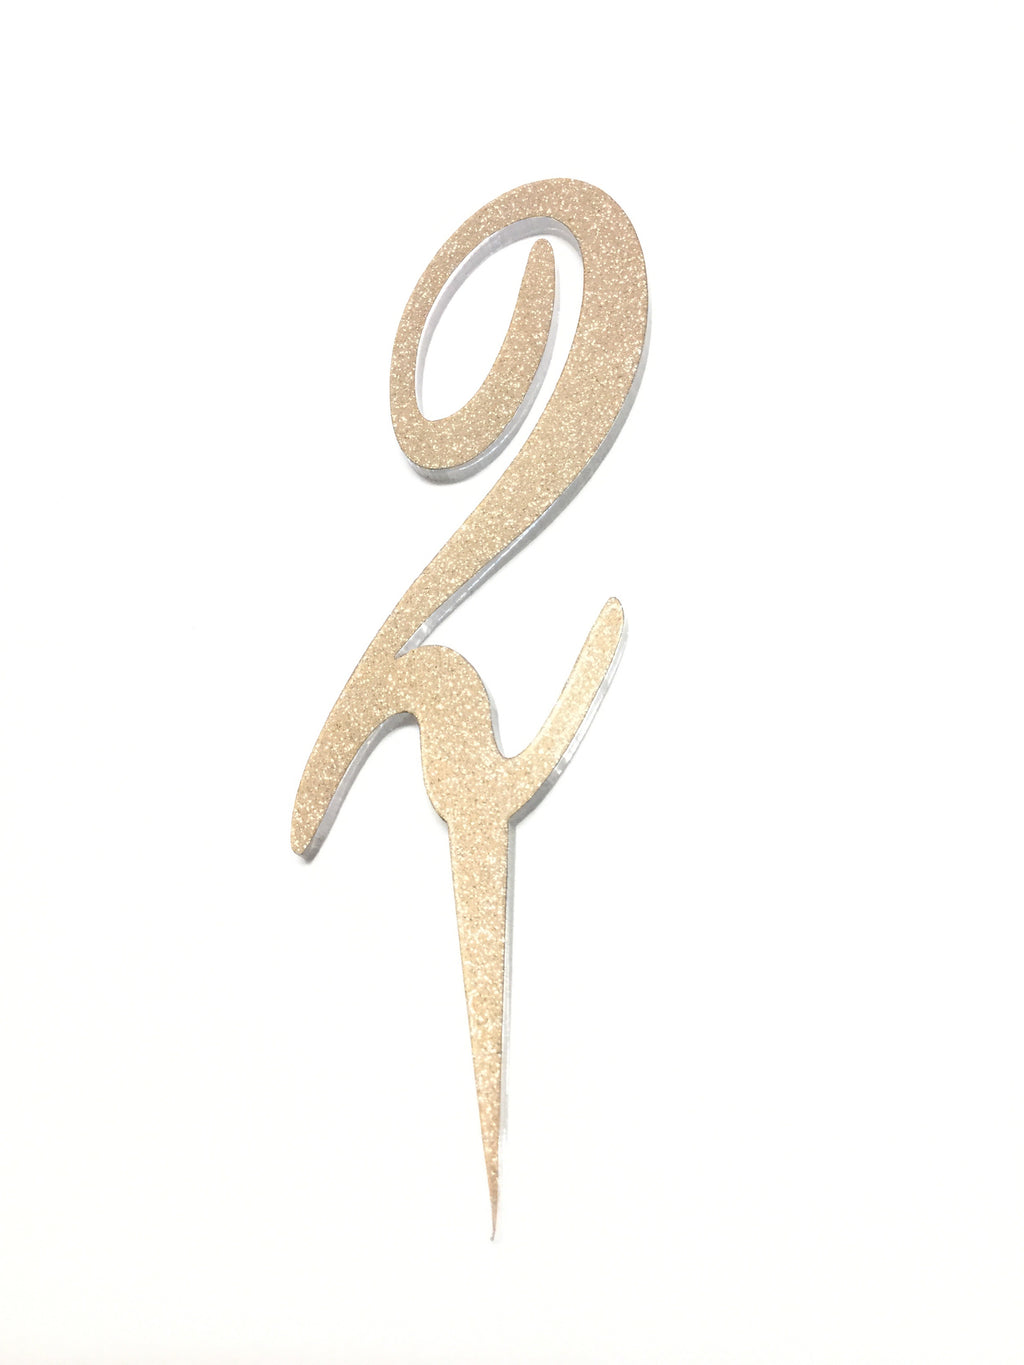 Acrylic Numbers Cake Topper - Rose Gold Sparkle